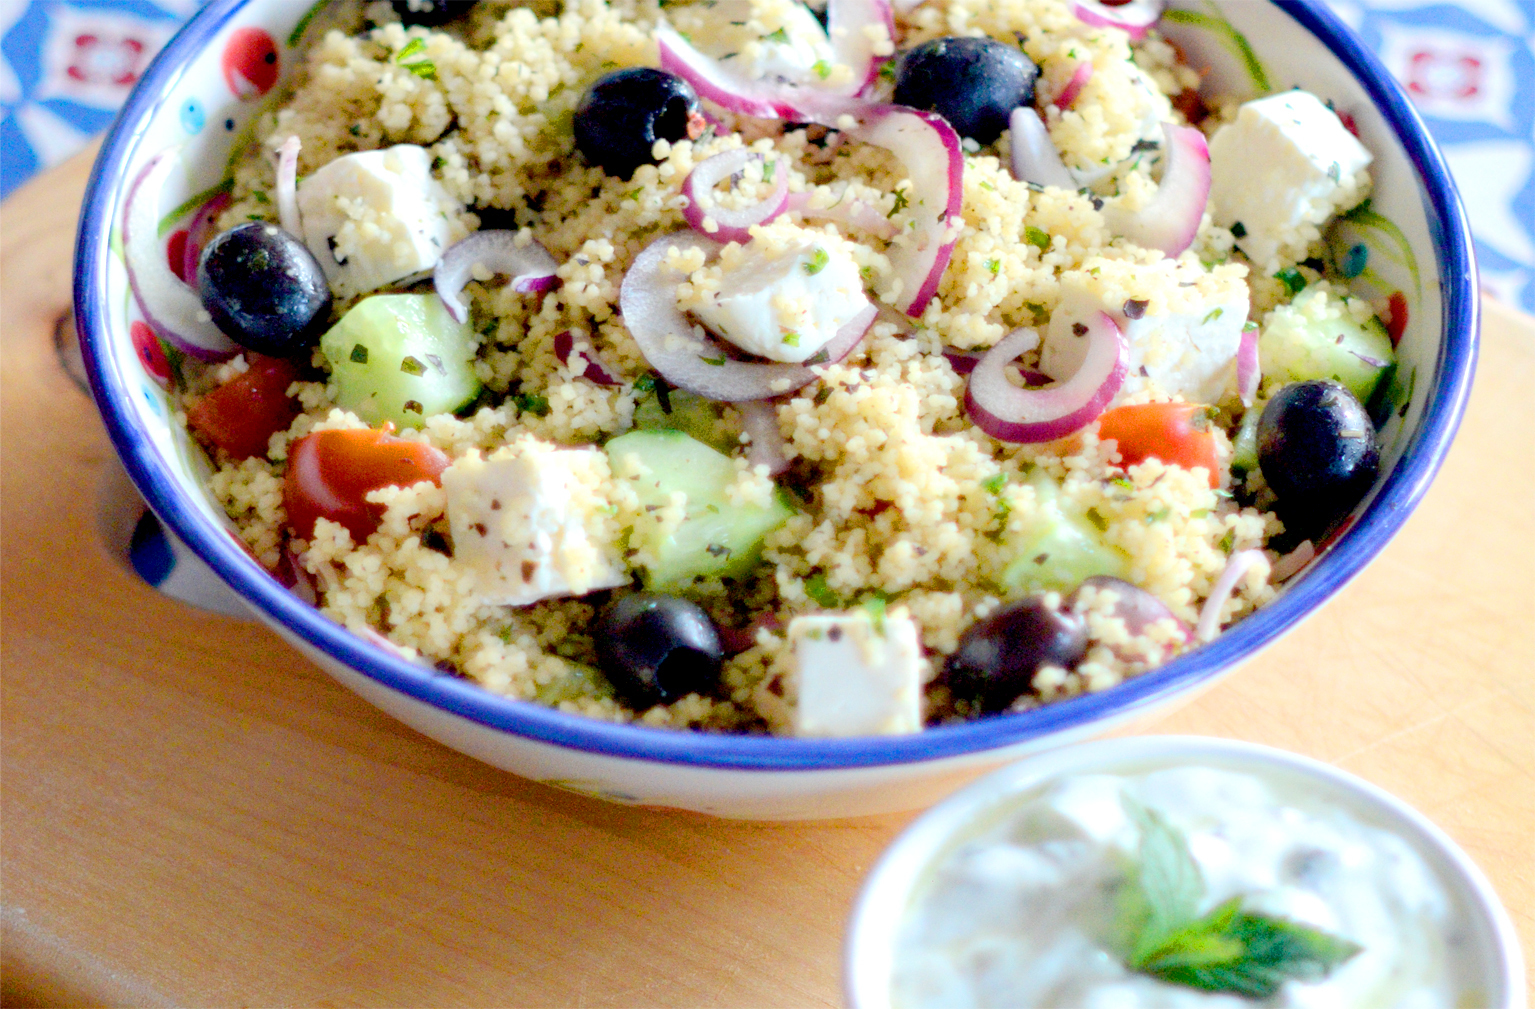 GREEK COUS COUS SALAD